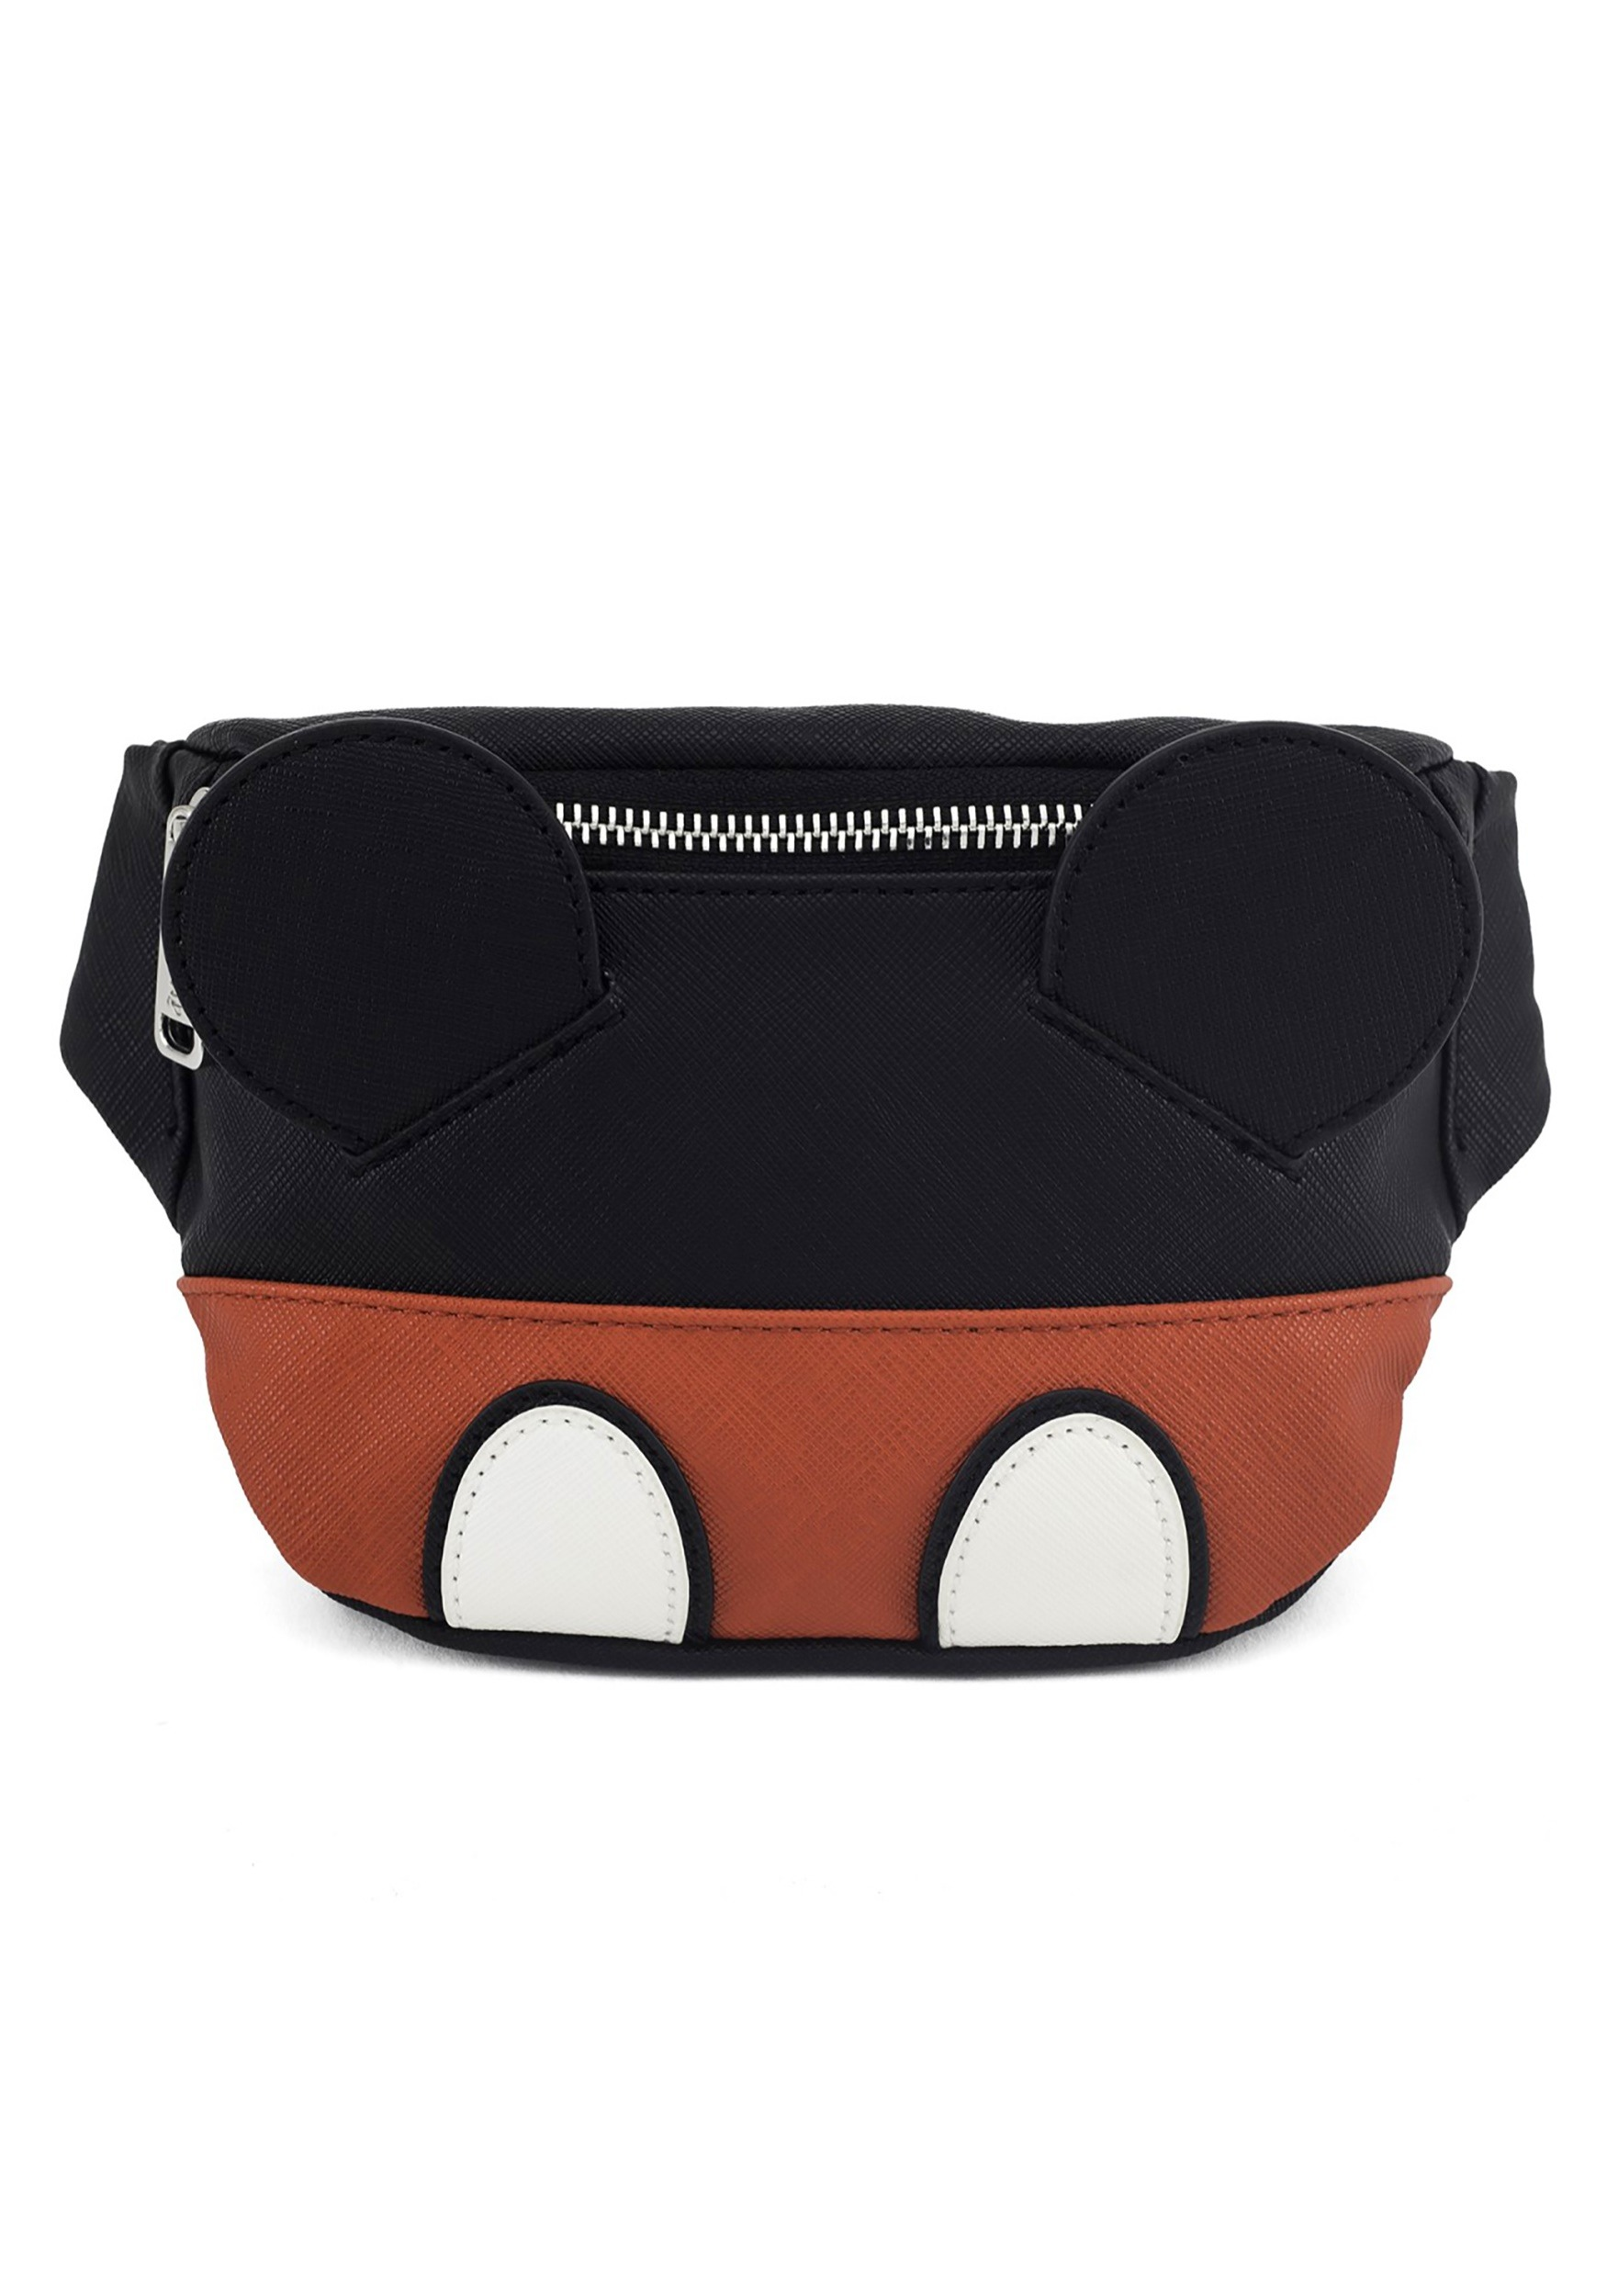 7f9a5bd51b76 Loungefly Mickey Mouse Faux Leather Fanny Pack